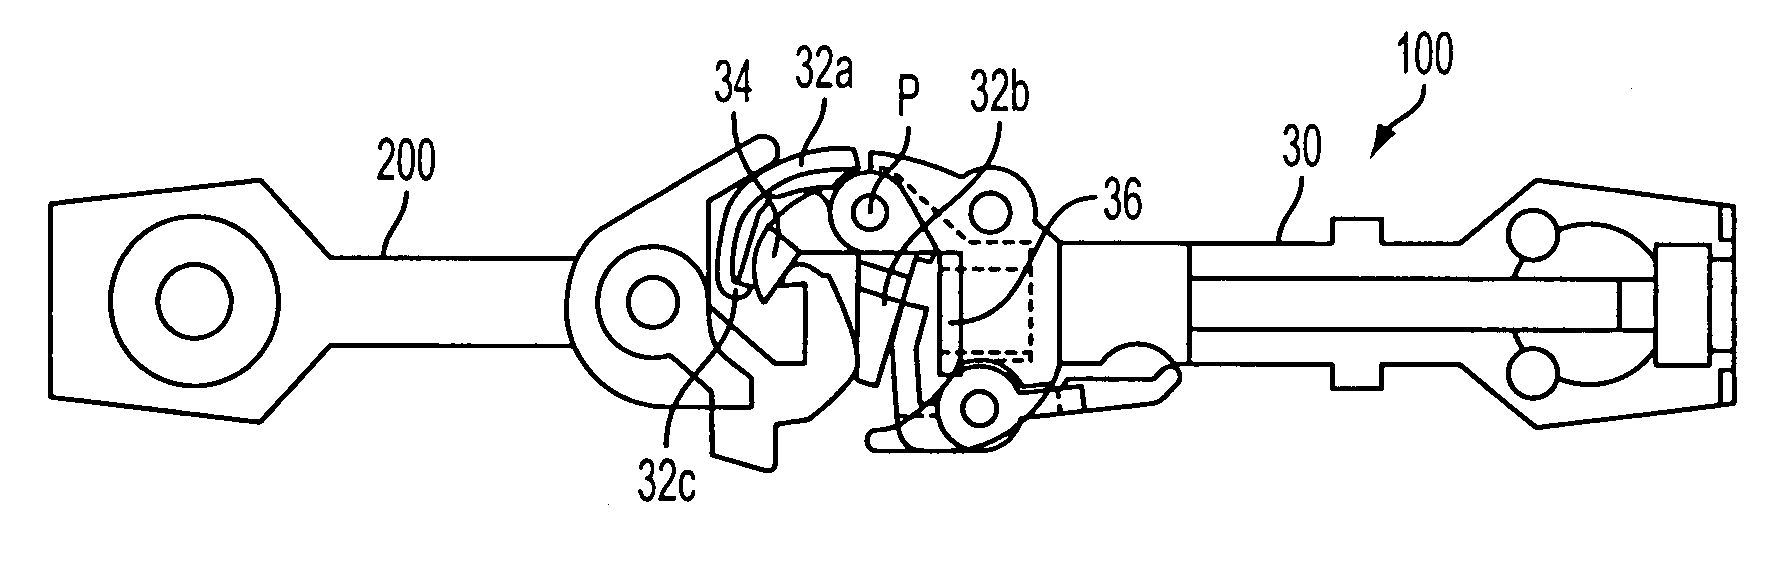 John Deere 4430 Wiring Diagram Light Switch Automotive 4040 For 6019 Circuit Tractor Diagrams